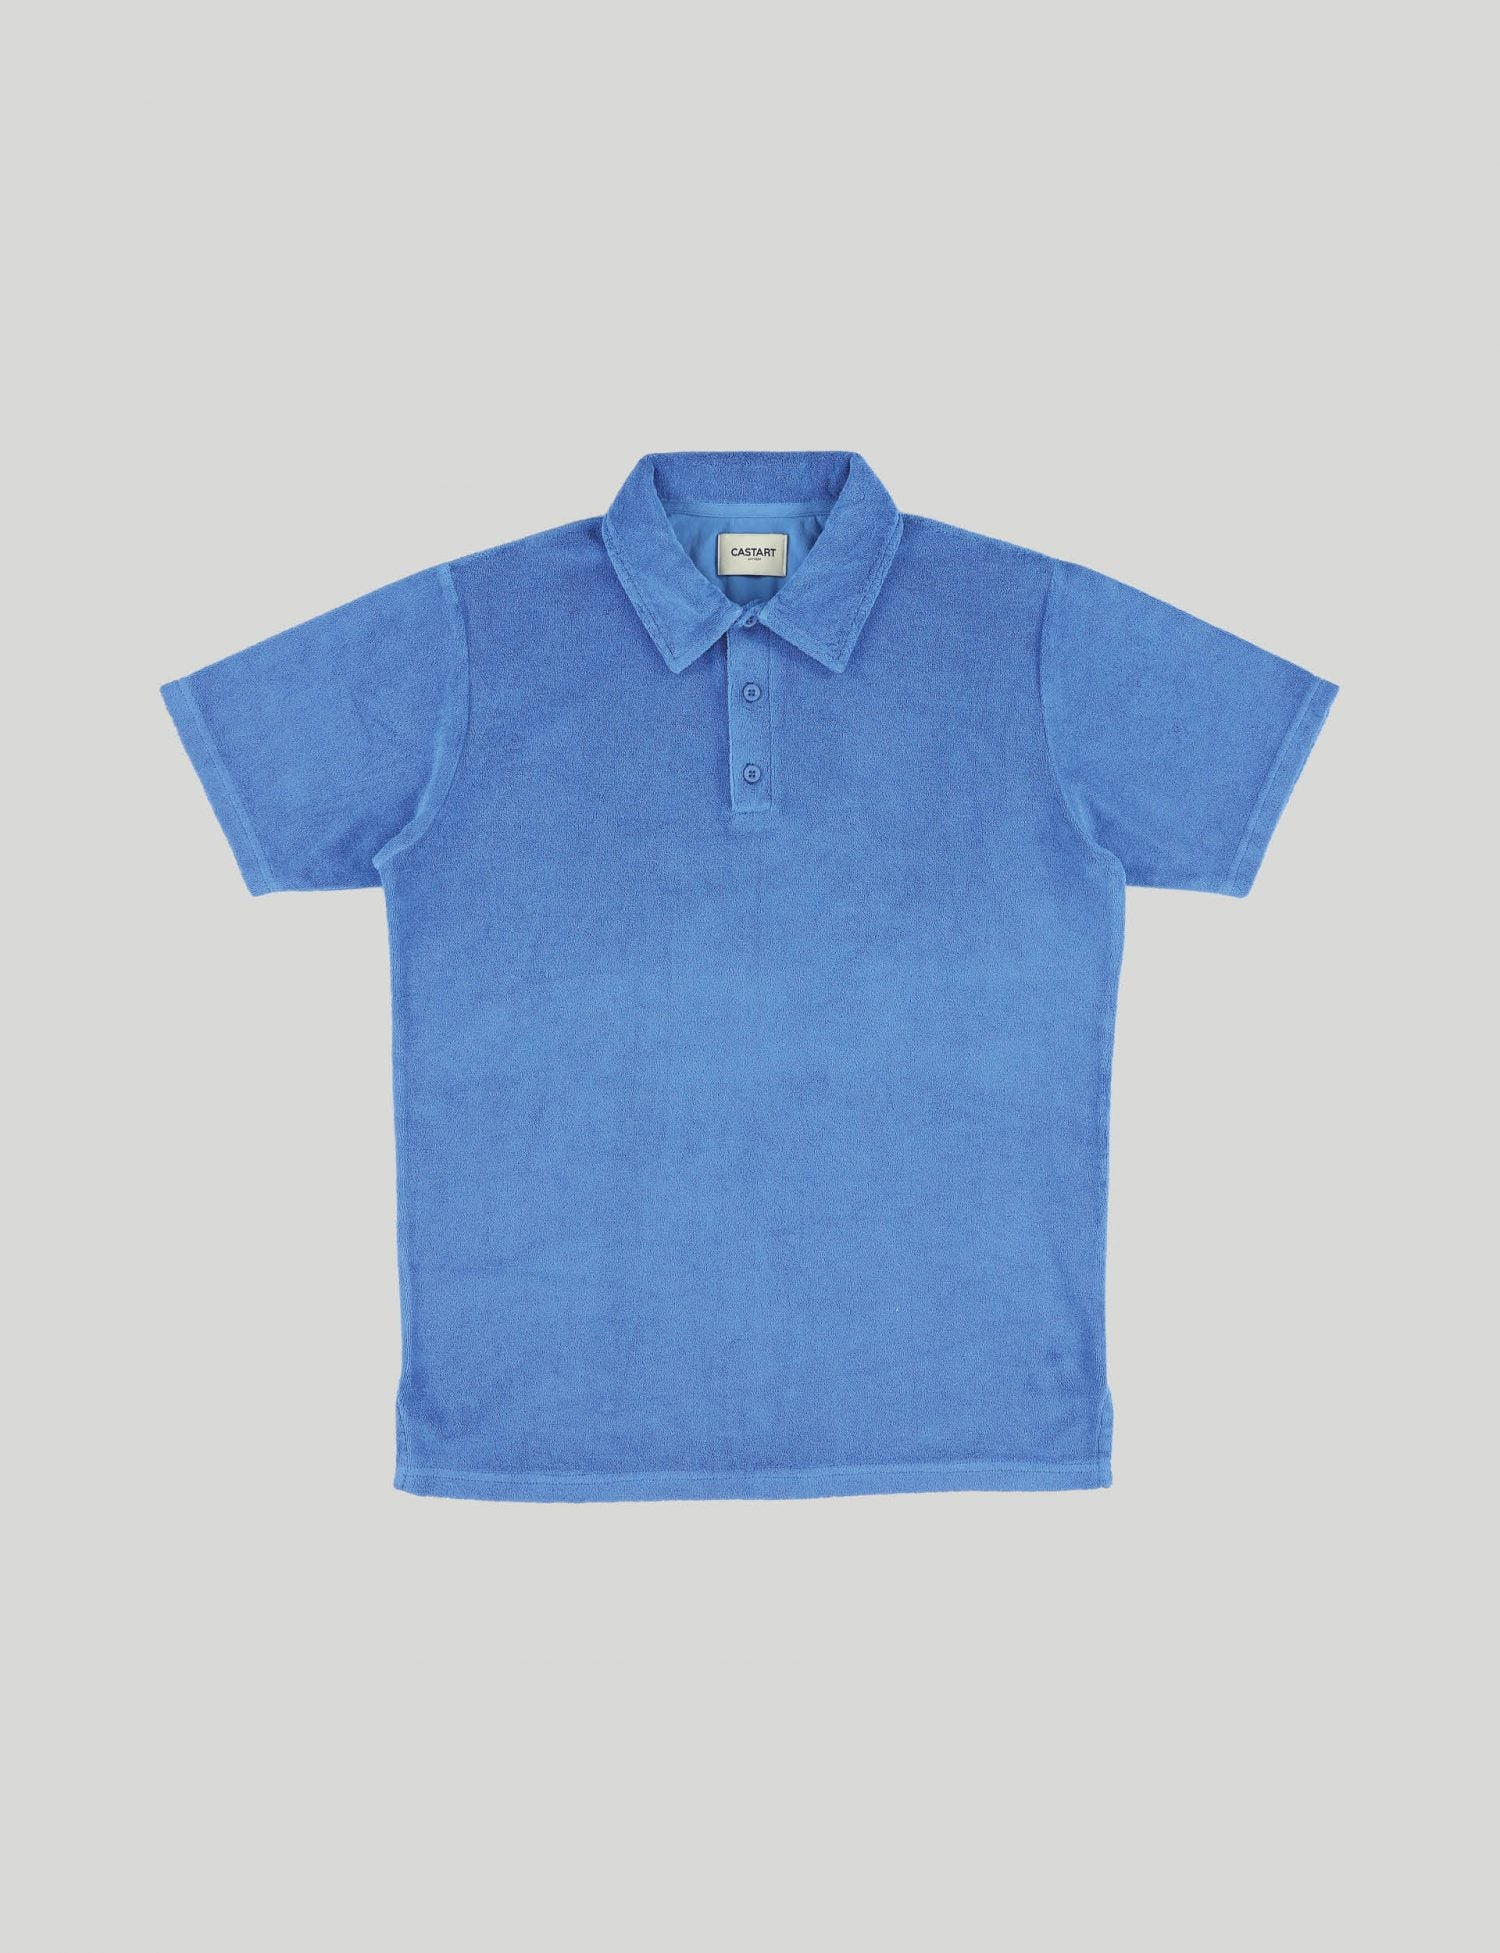 Castart seaford polo french blue